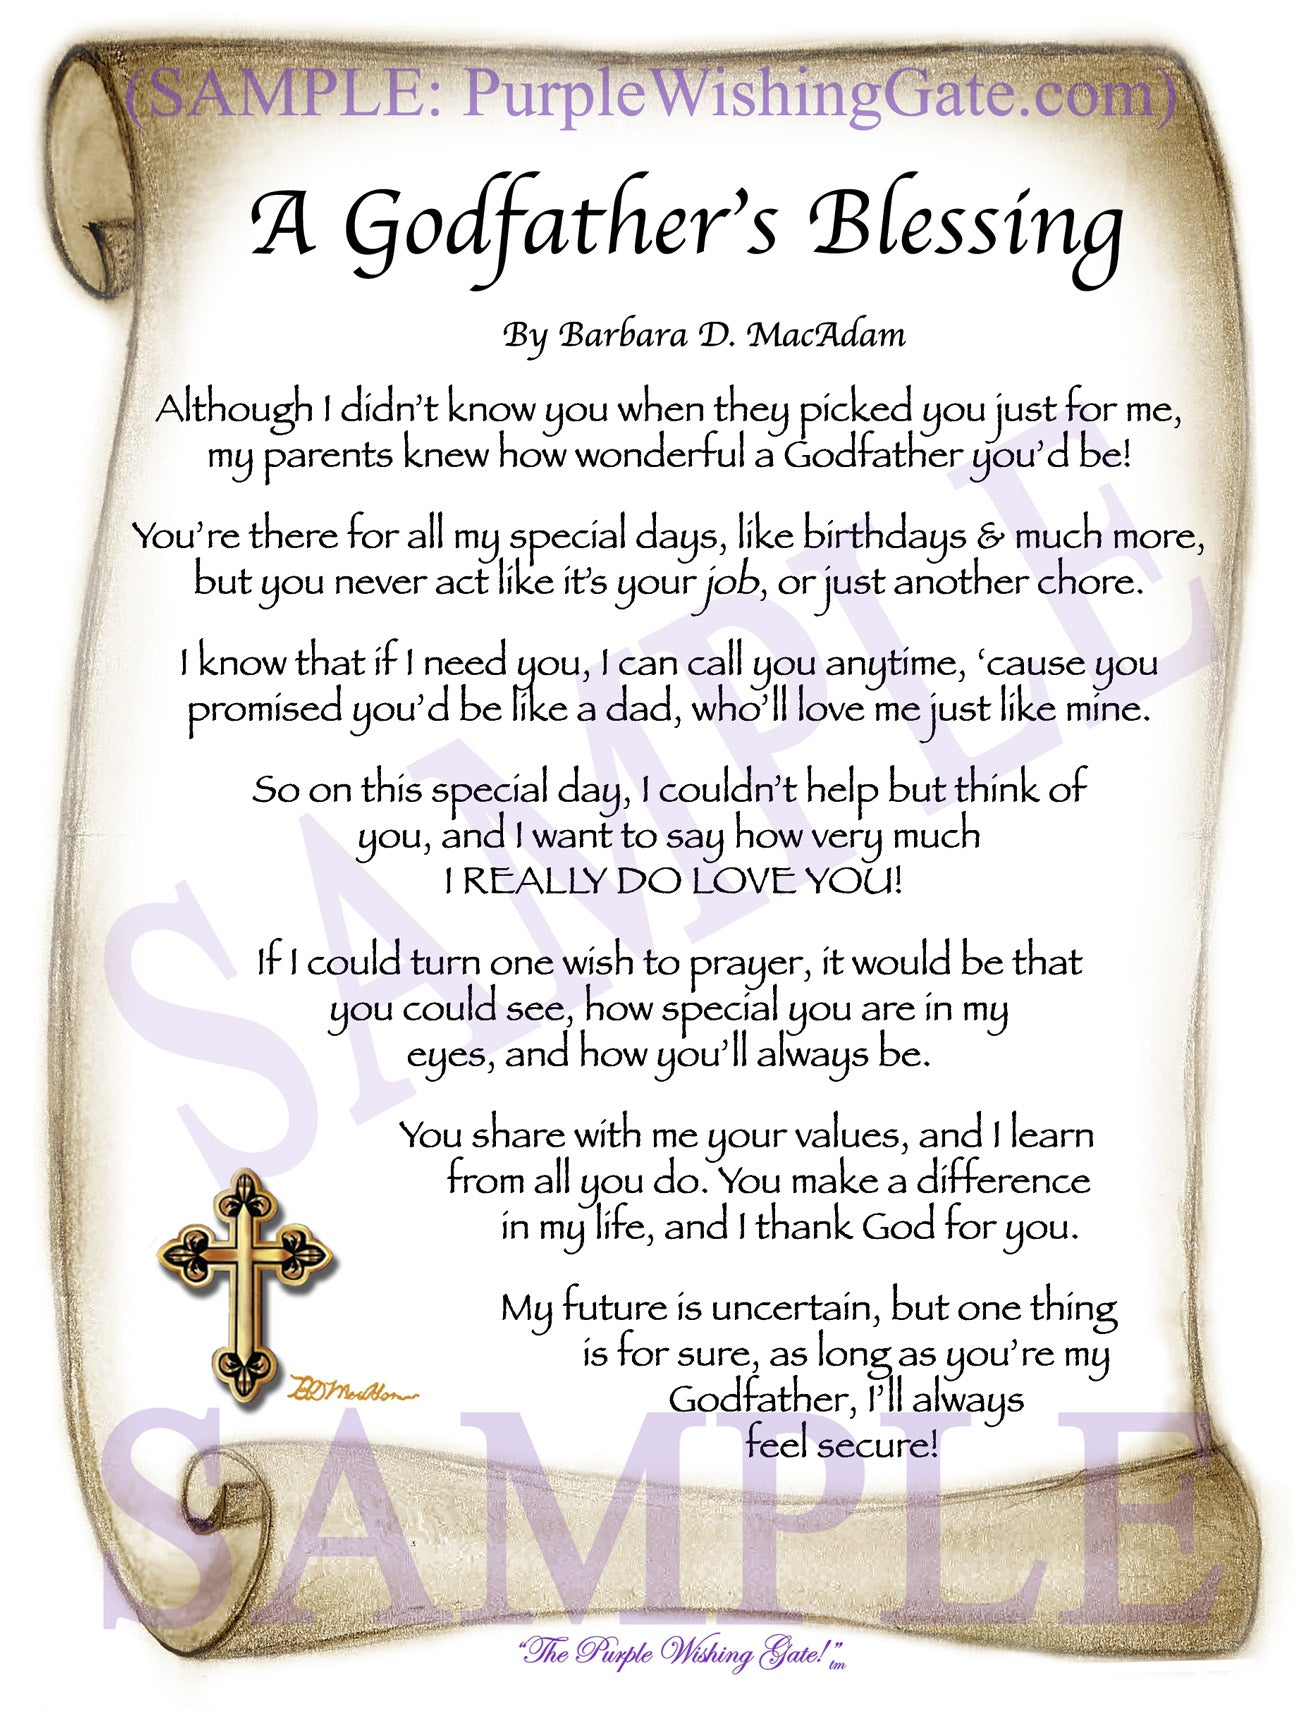 A Godfather's Blessing - Godfather's Gift - PurpleWishingGate.com